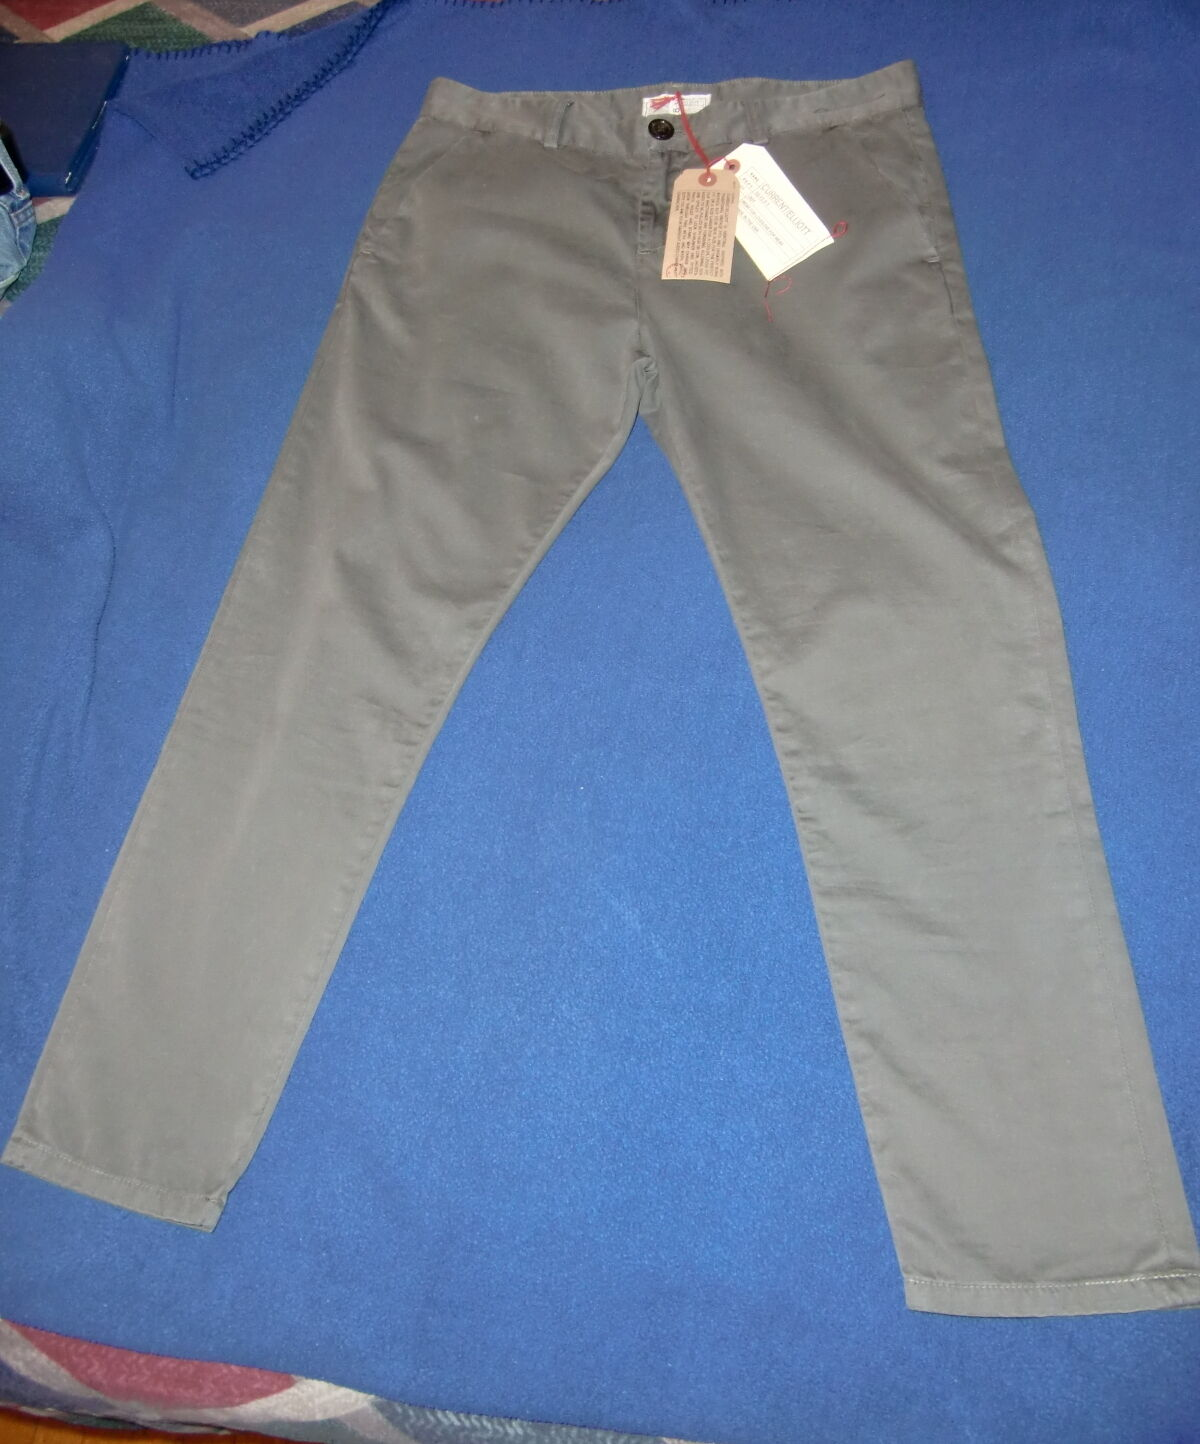 NWT Current Elliott The Smart Trouser Pants   168 CUFF or Roll size 28